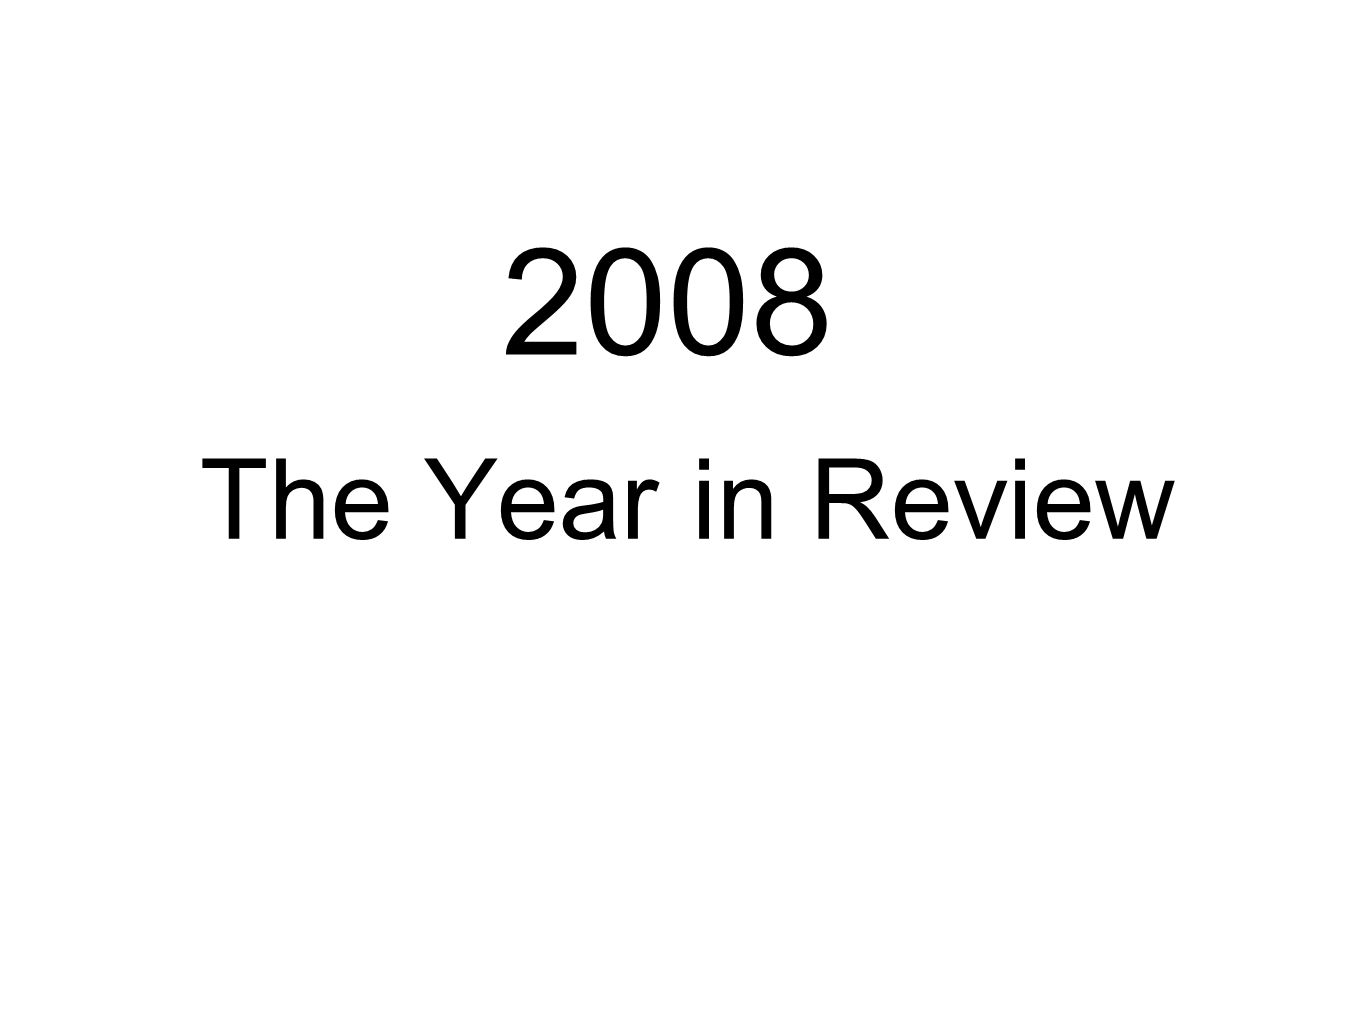 The Year in Review 2008